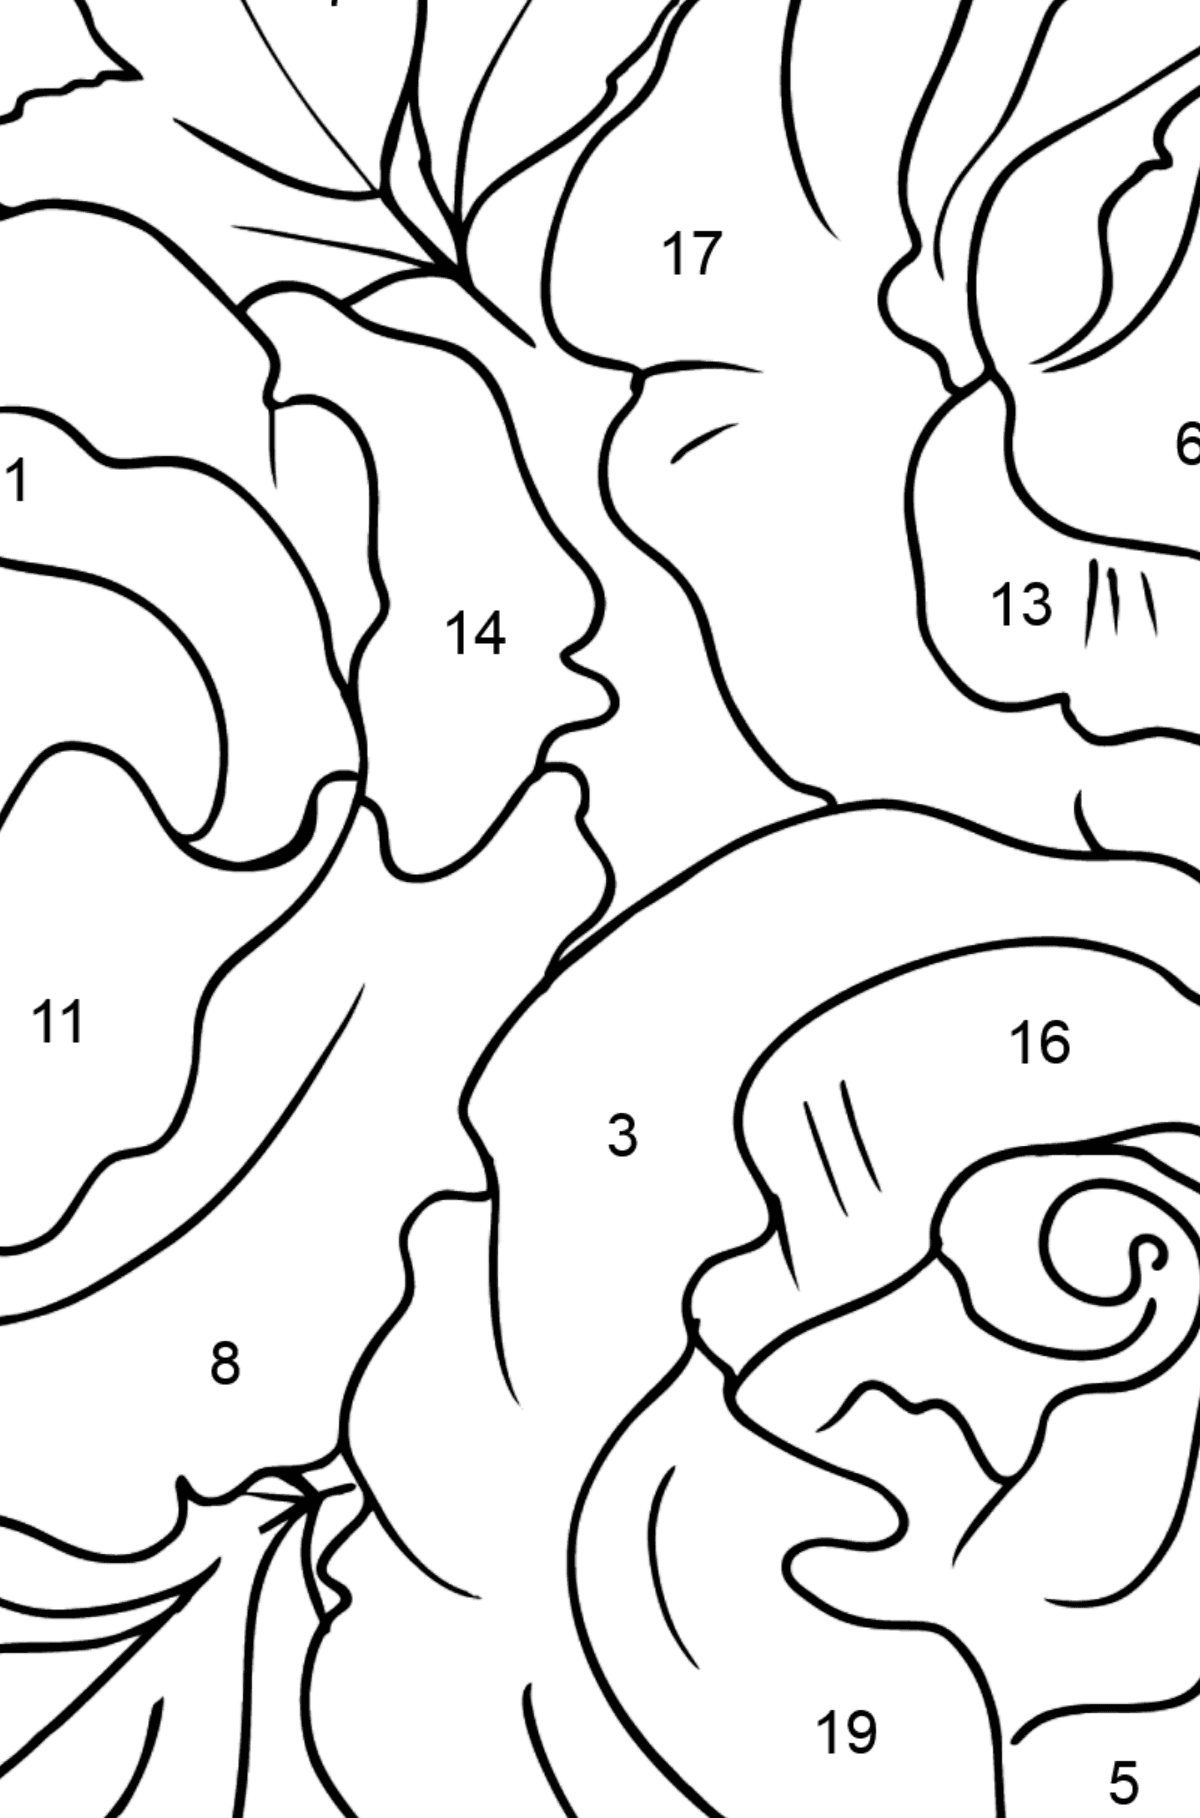 Roses Coloring Page - Coloring by Numbers for Kids